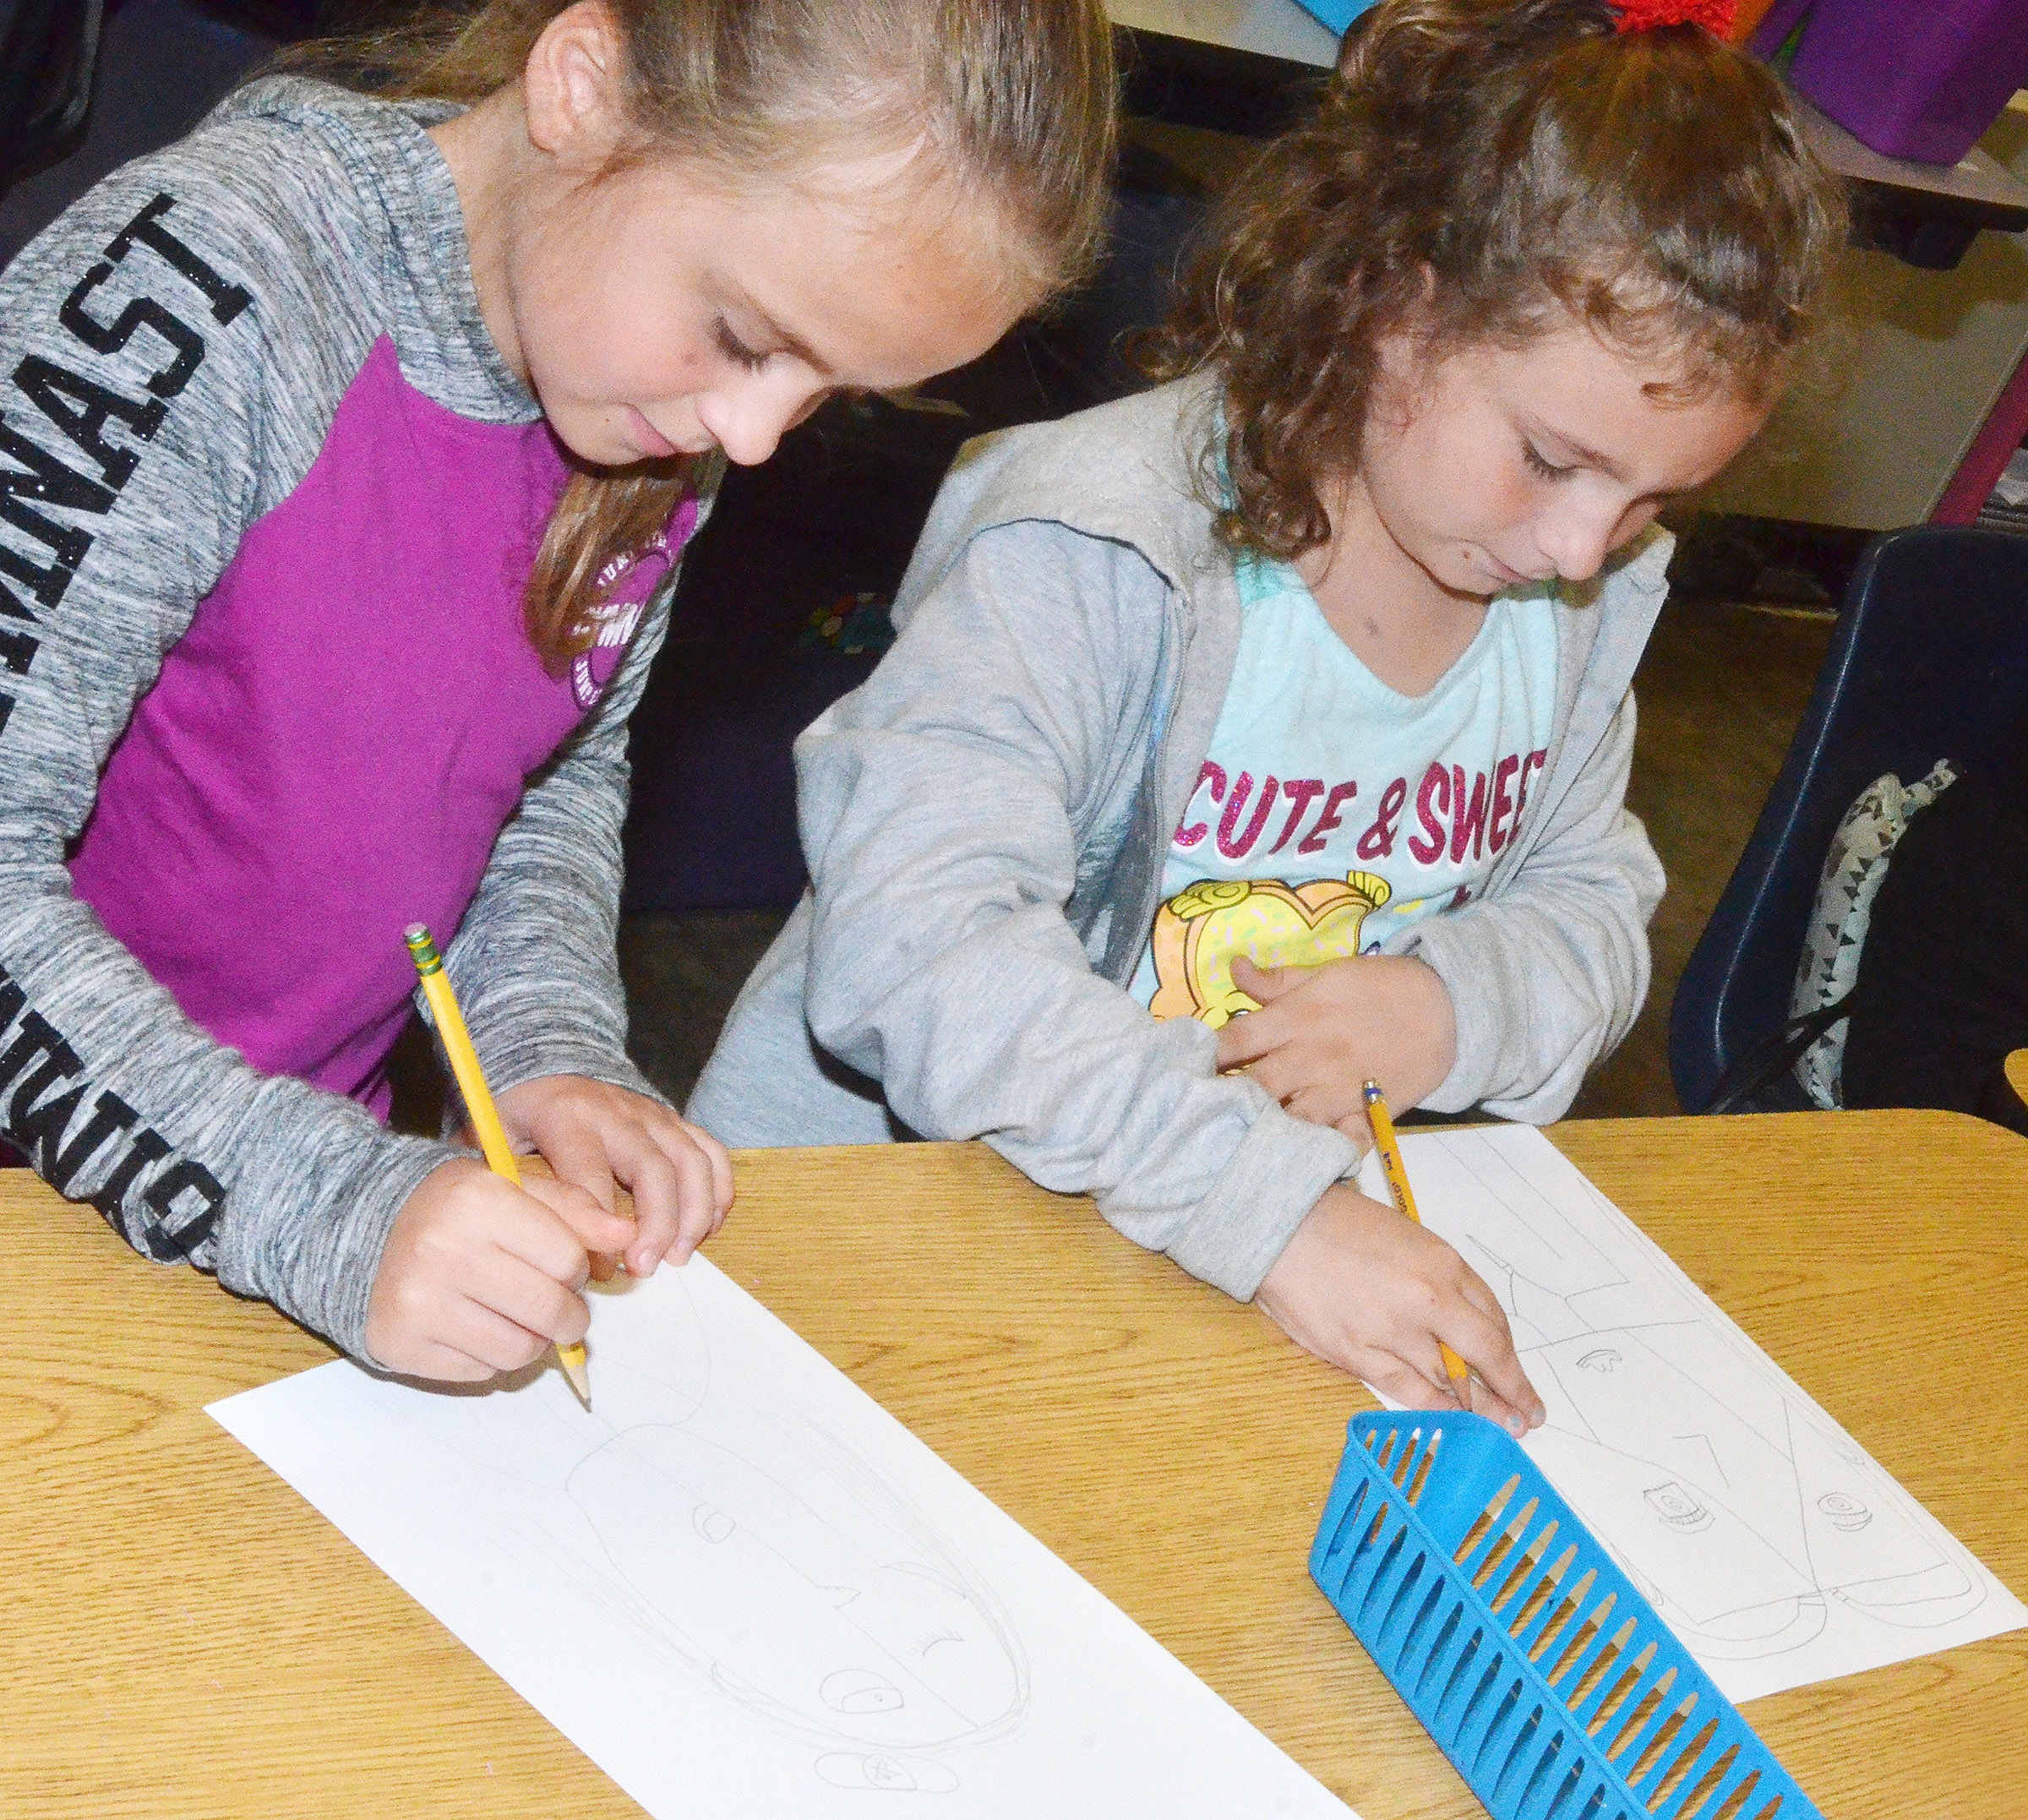 CES fourth-graders Kennedy Griffiths, at left, and Aliyah Burton draw their distorted self-portraits.